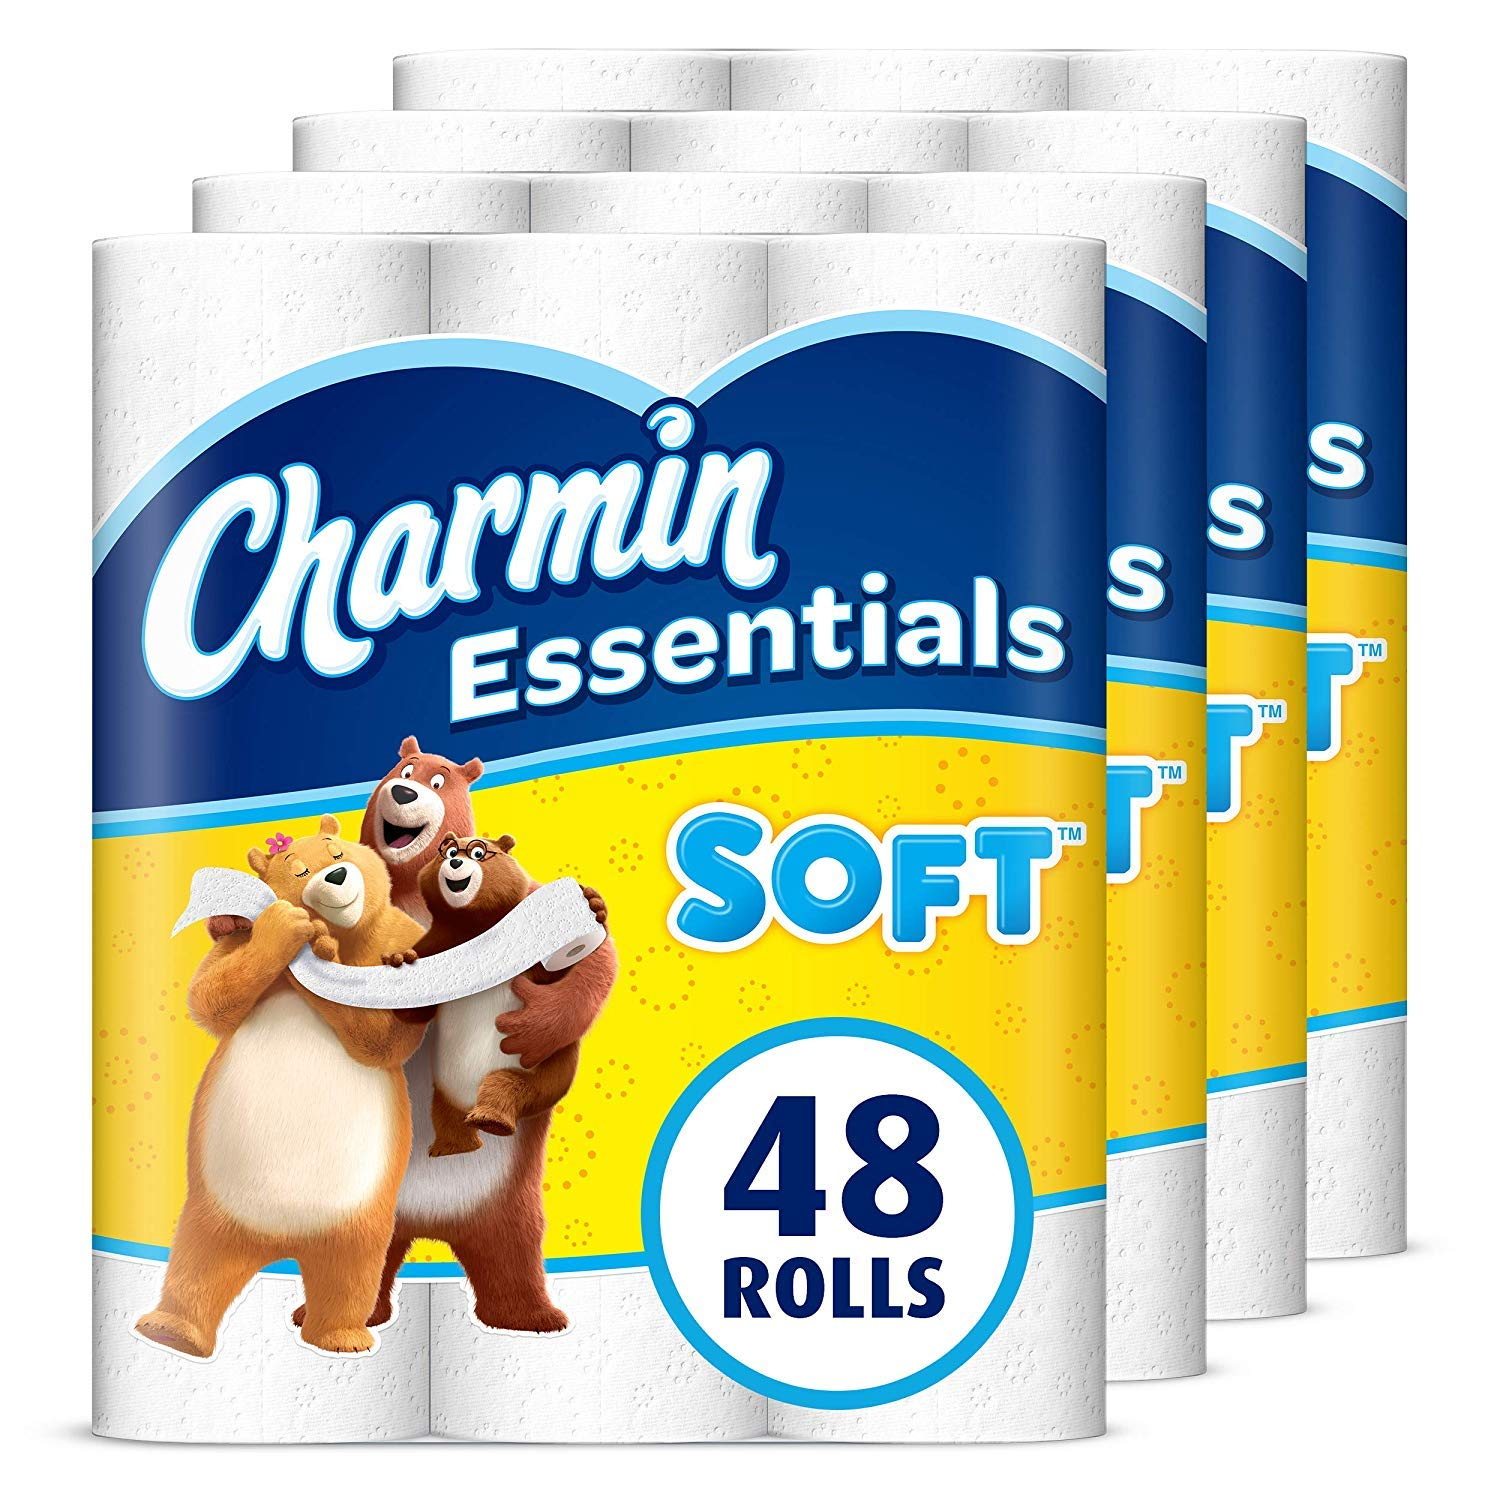 Charmin Essentials Soft Toilet Paper, 2-Ply, 48 Giant Rolls (Equal to 108 Regular Rolls) by Charmin